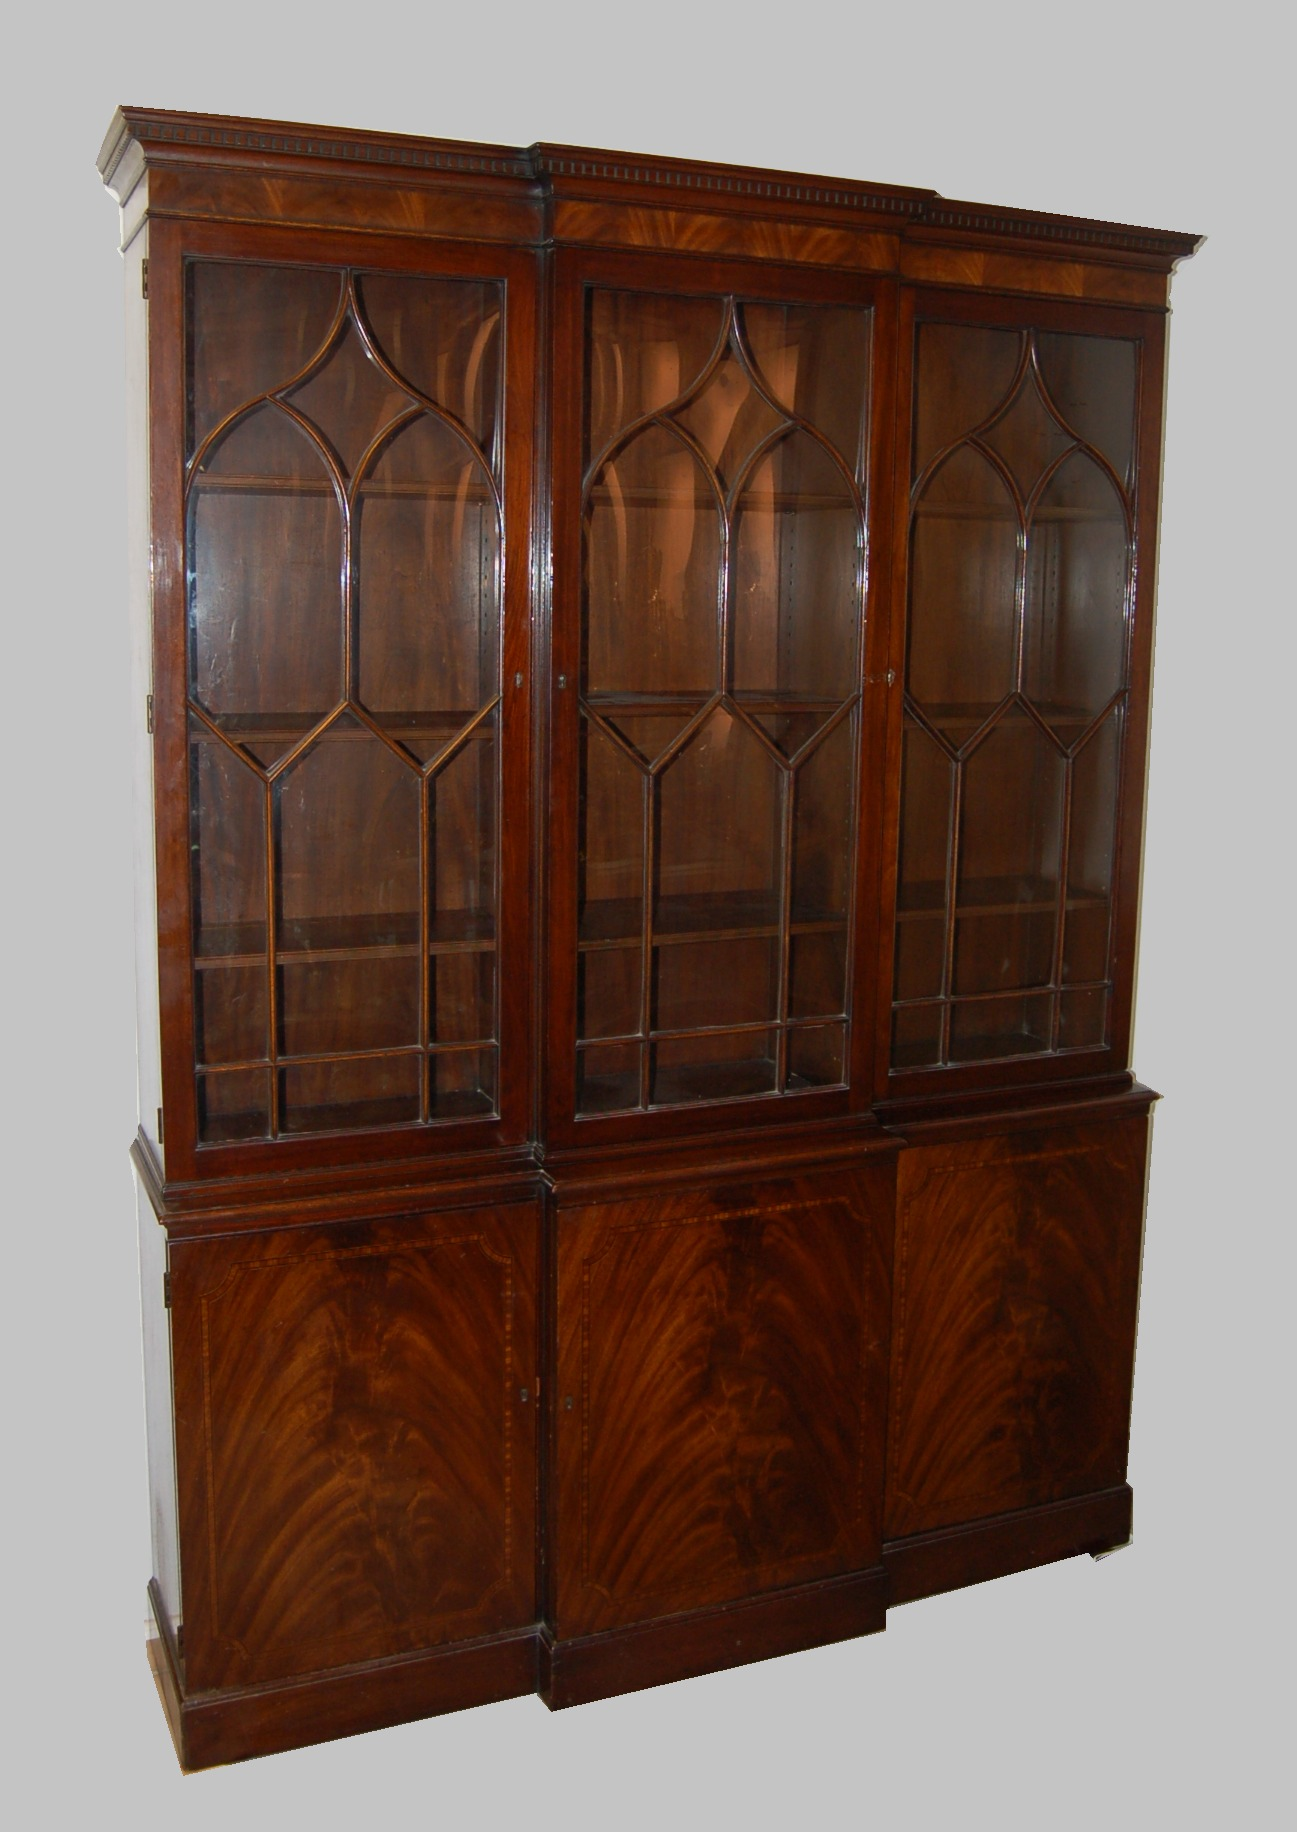 A Lovely Vintage China Cabinet Made by Baker Furniture - A Lovely Vintage China Cabinet Made By Baker Furniture, 11.16.07